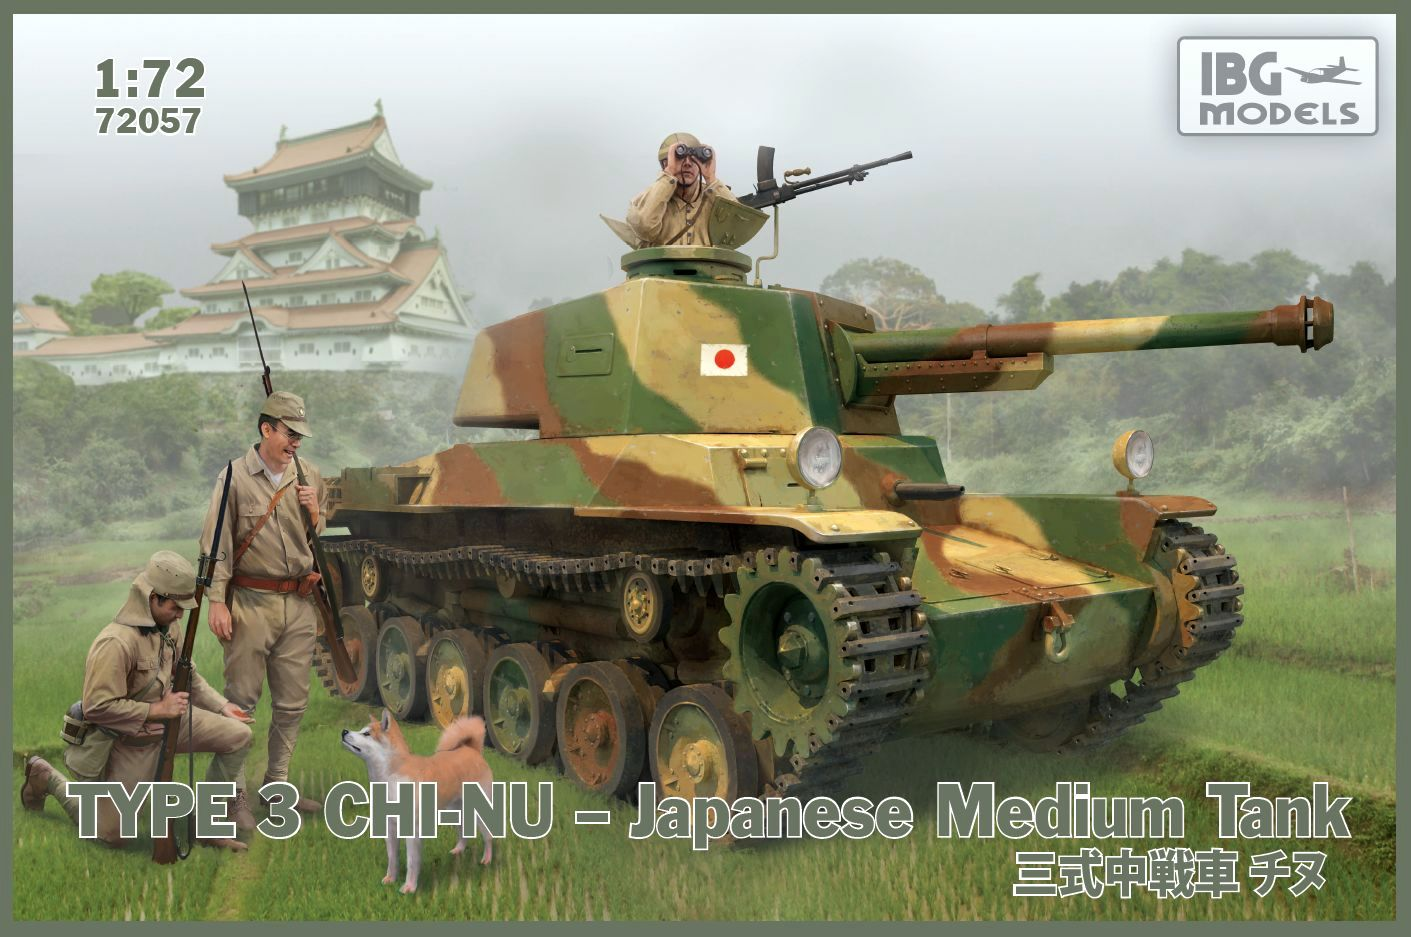 Type 3 Chi-Nu Japanese Medium Tank